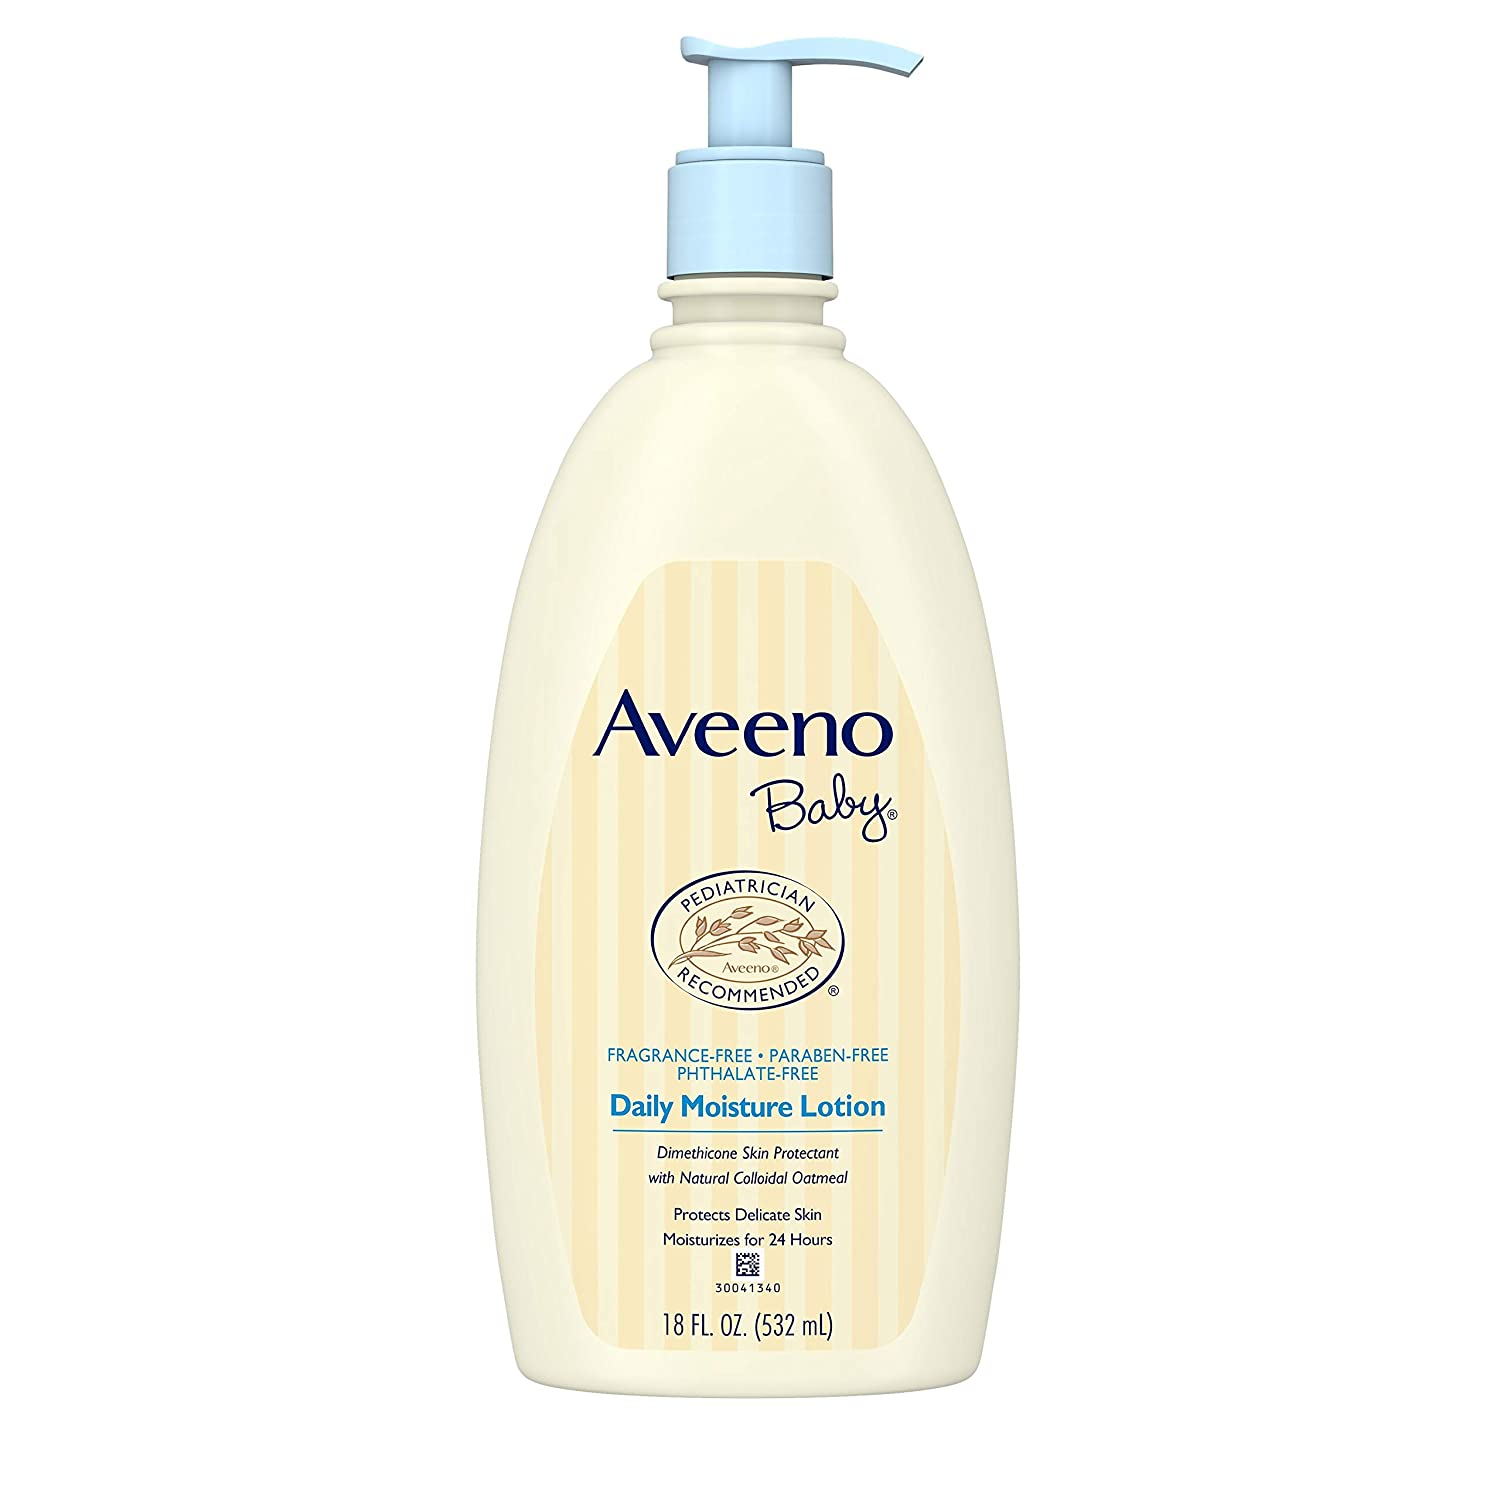 aveeno-daily-best moisturizers for baby